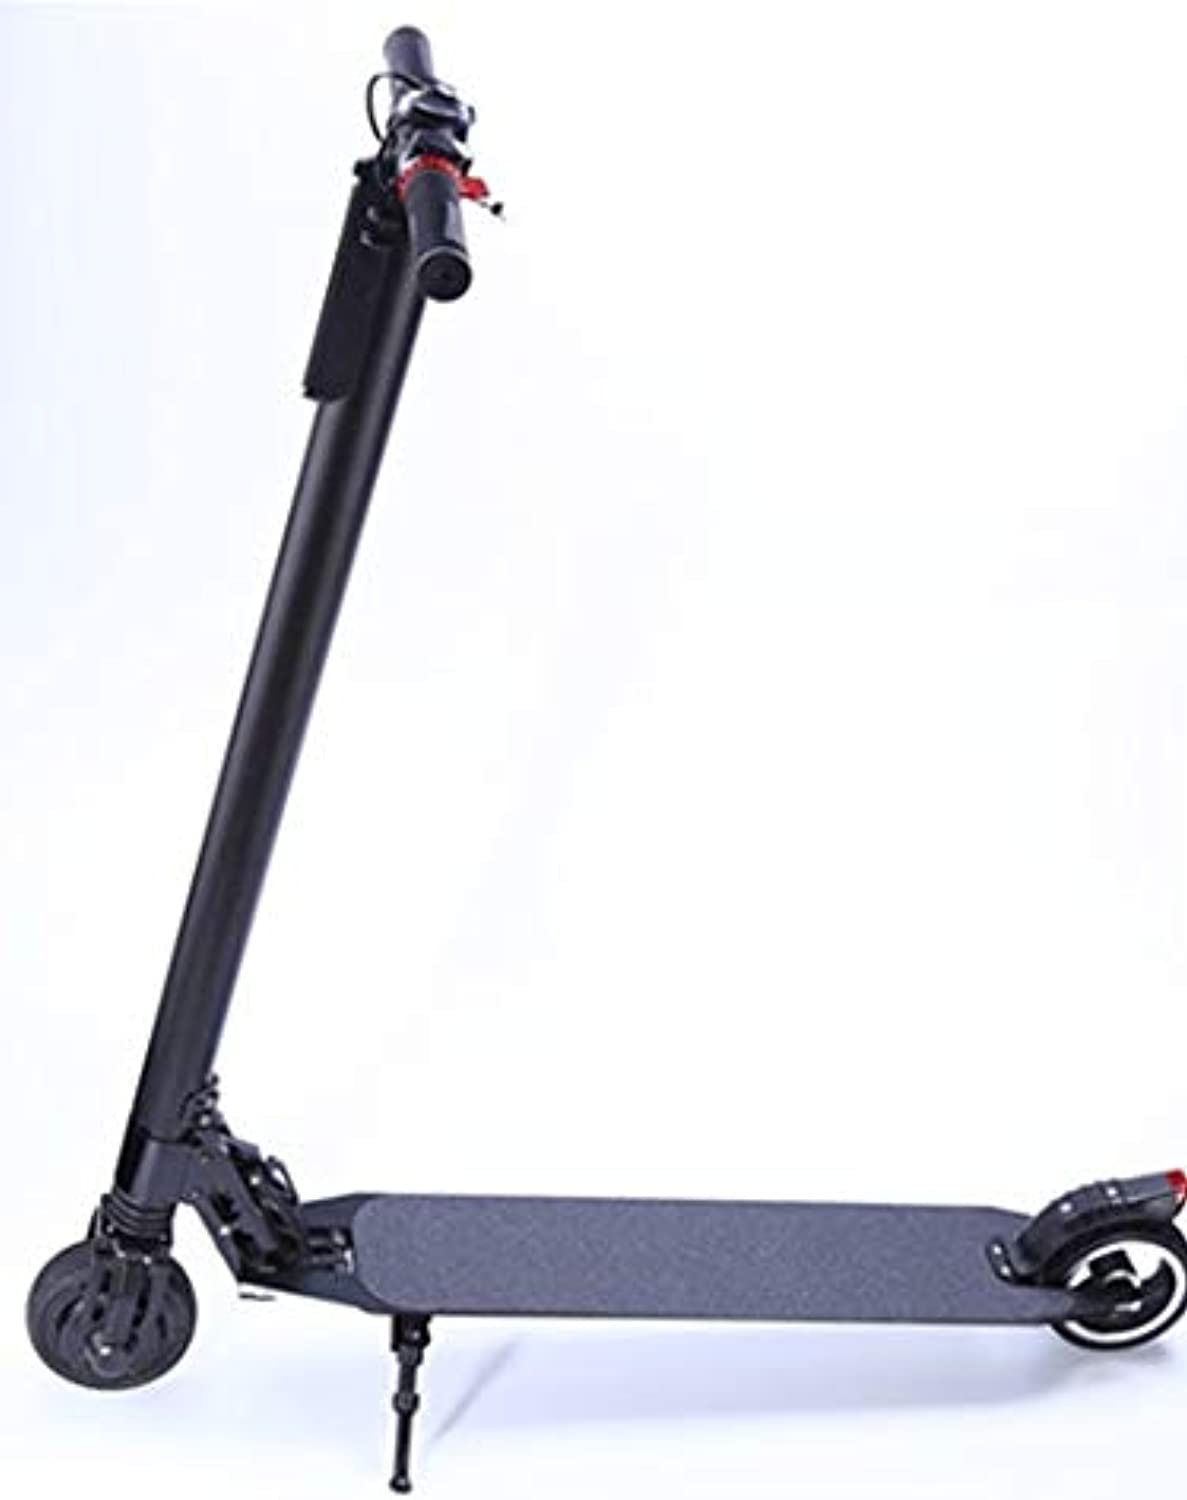 Electric Scooter 8 inches, Aluminum Alloy, 300 Watt Motor, Round Instrument, only 8.5 kg, eScooter, Electric Scooter, Double Shock Absorption Front and Rear, 24V, Black